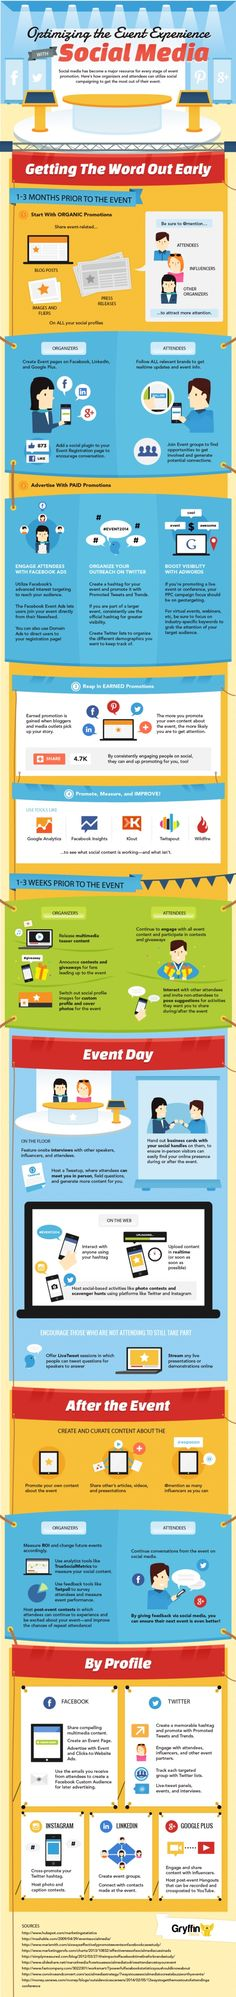 Internet Marketing Expert Gloria Rand Rand shares an infographic that shows small business owners how to use social media to promote live events.